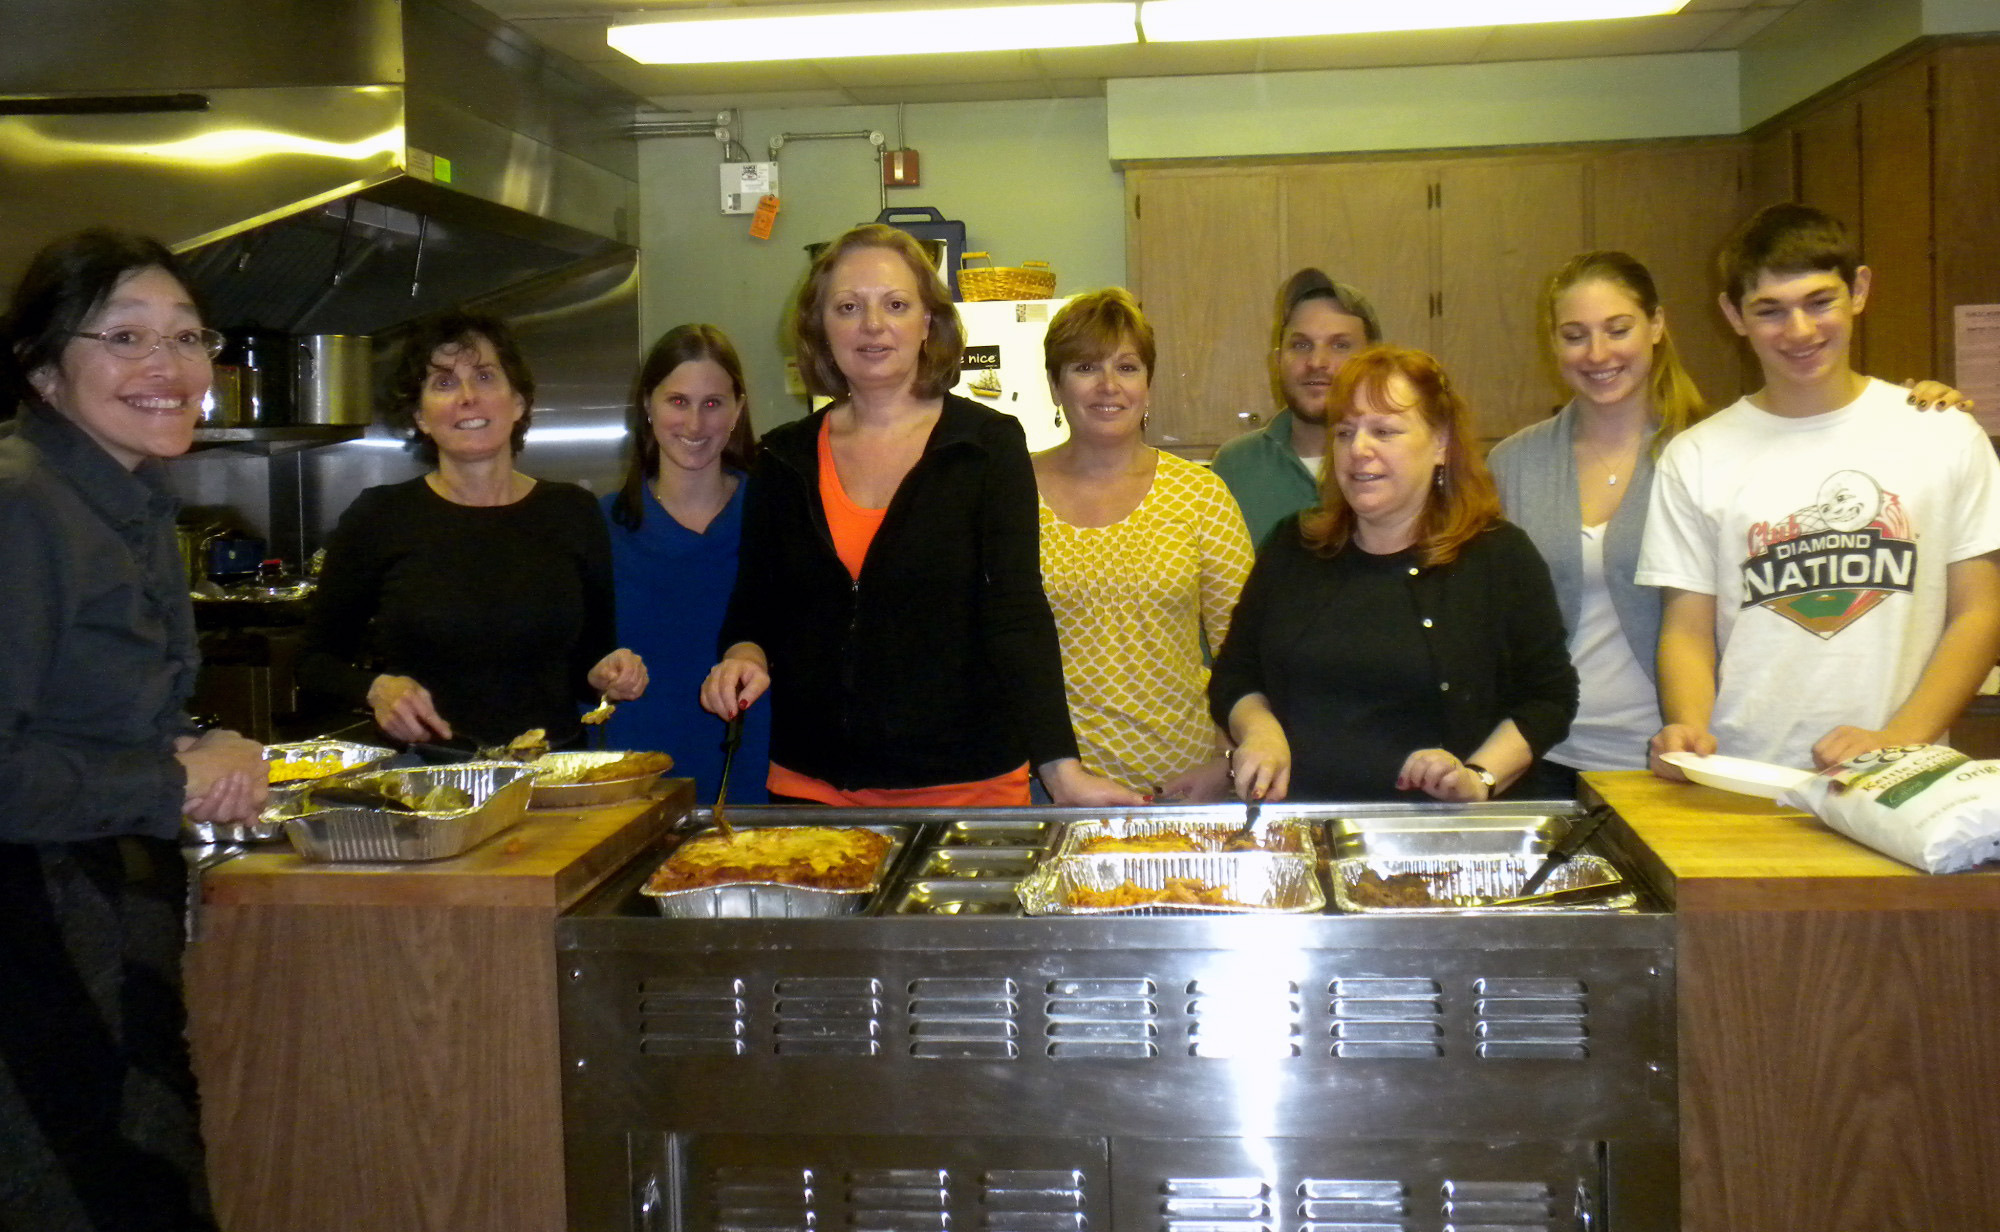 cfb4e69f23961f2f2916_soup_kitchen_group_photo_oct_30.jpg